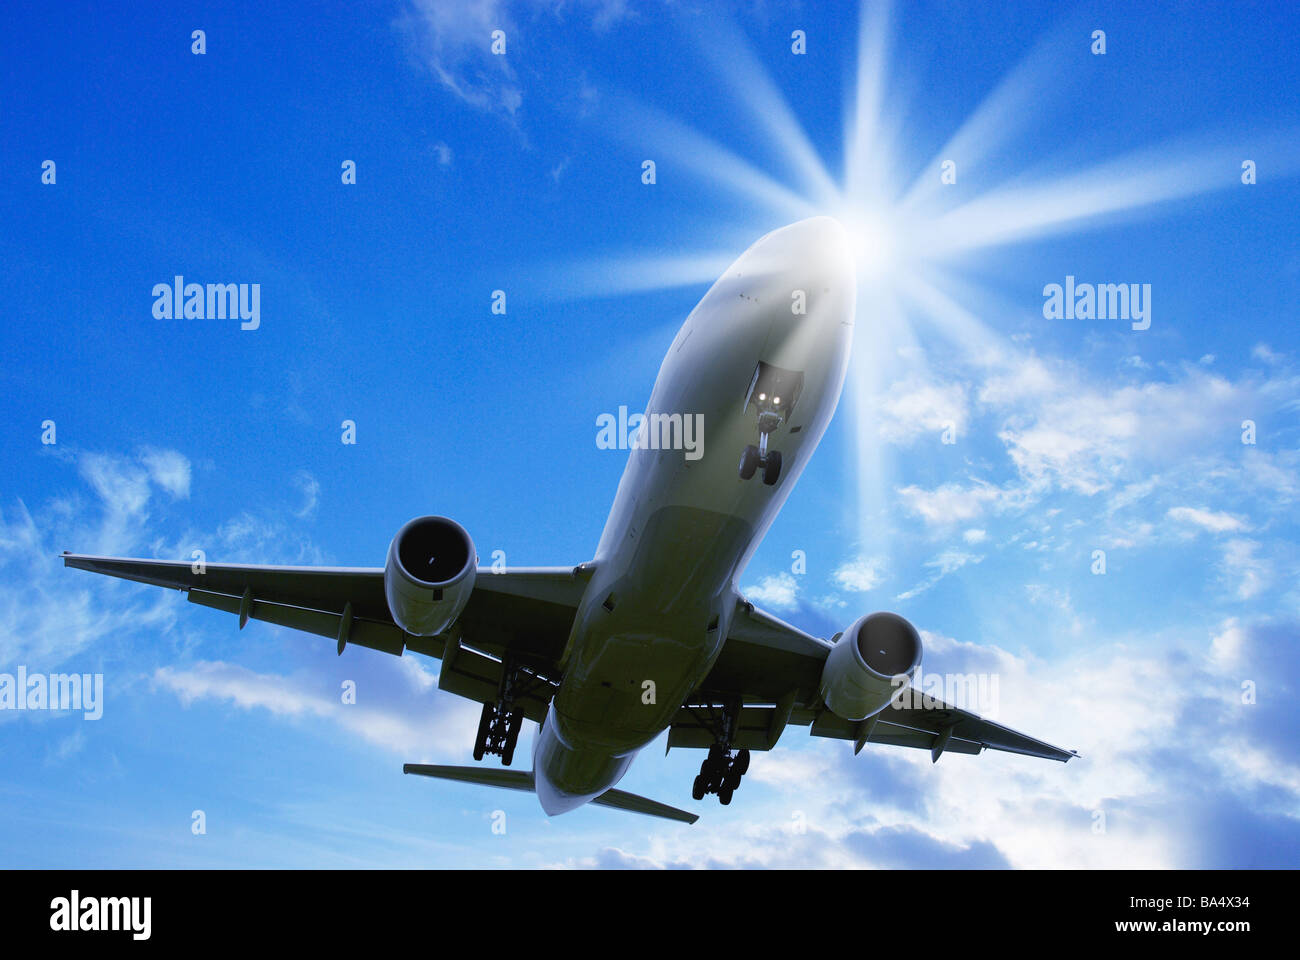 Jumbo Jet Taking Off From the Runway at International Airport Stock Photo